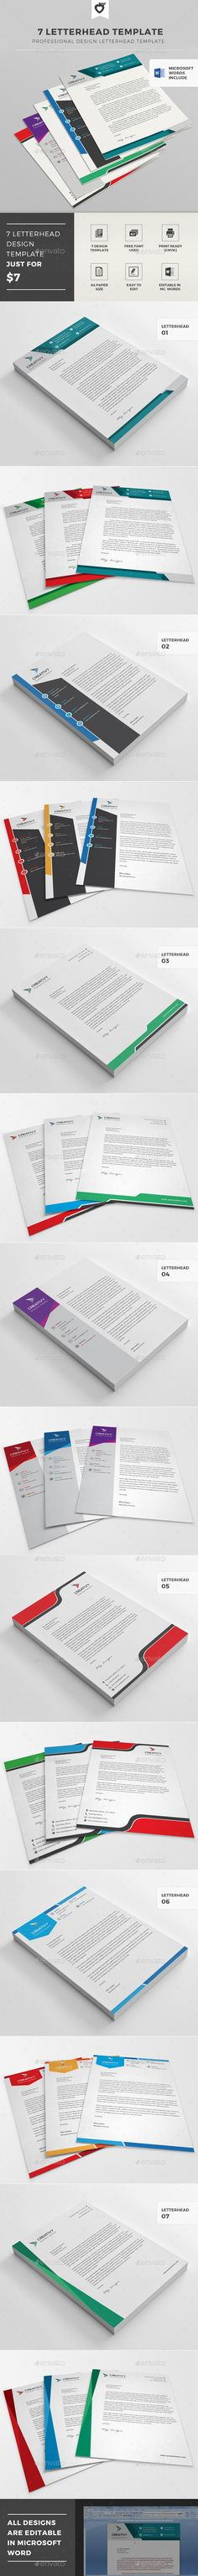 Buy Letterhead Template by LeafLove on GraphicRiver. This layout is suitable for any project purpose. Very easy to use and customise. Stationery Printing, Stationery Templates, Stationery Items, Stationery Design, Letterhead Design, Letterhead Template, Letter Templates, Print Templates, Design Templates